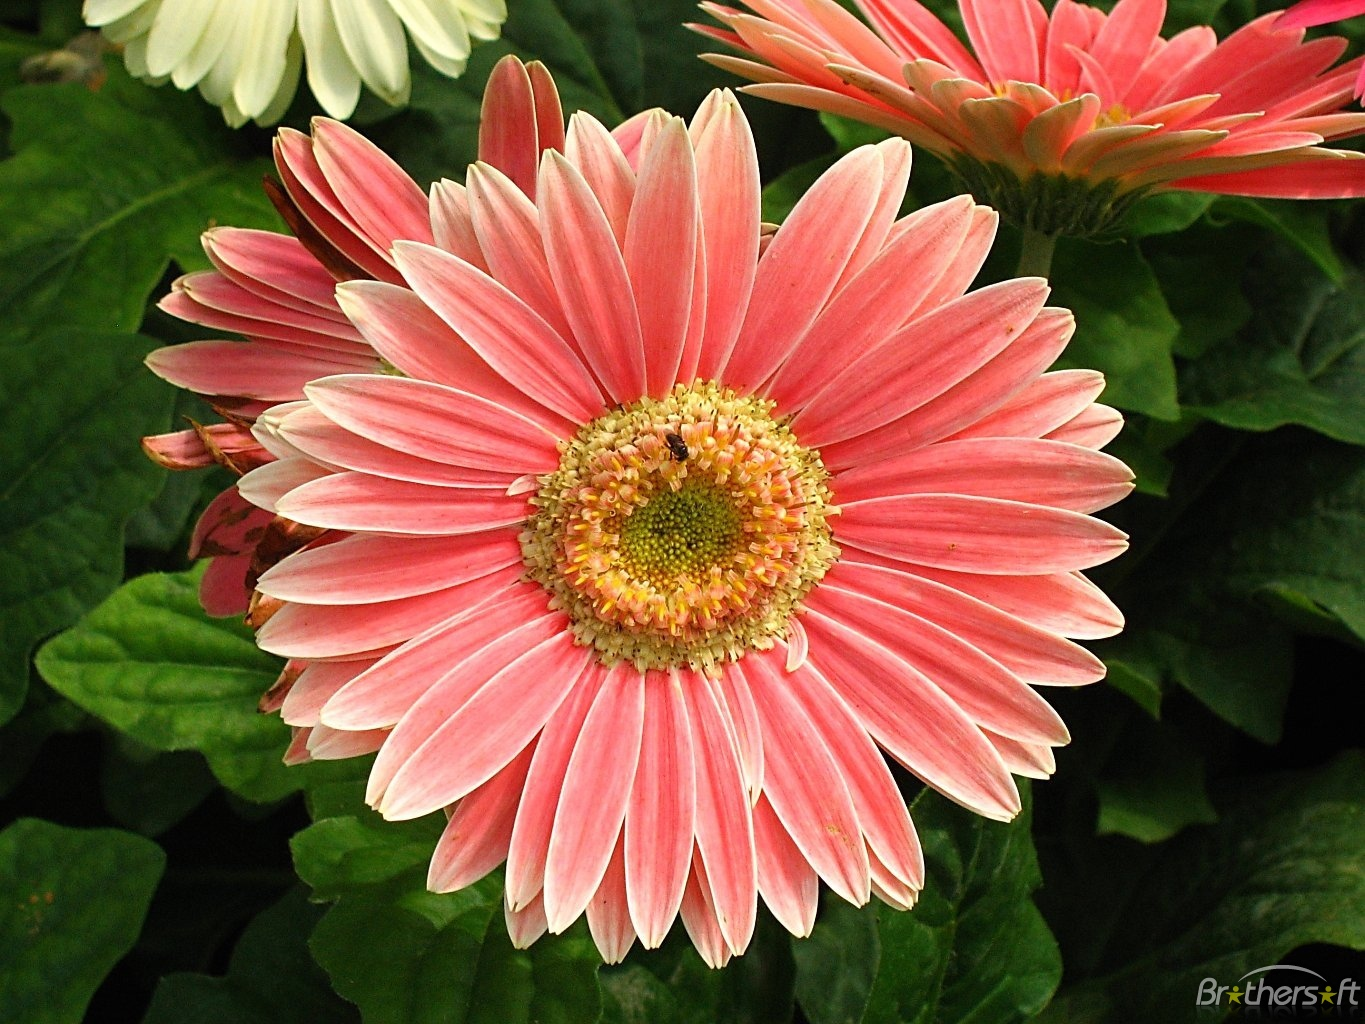 Flowers free picture royalty free download Free image flowers - ClipartFest picture royalty free download